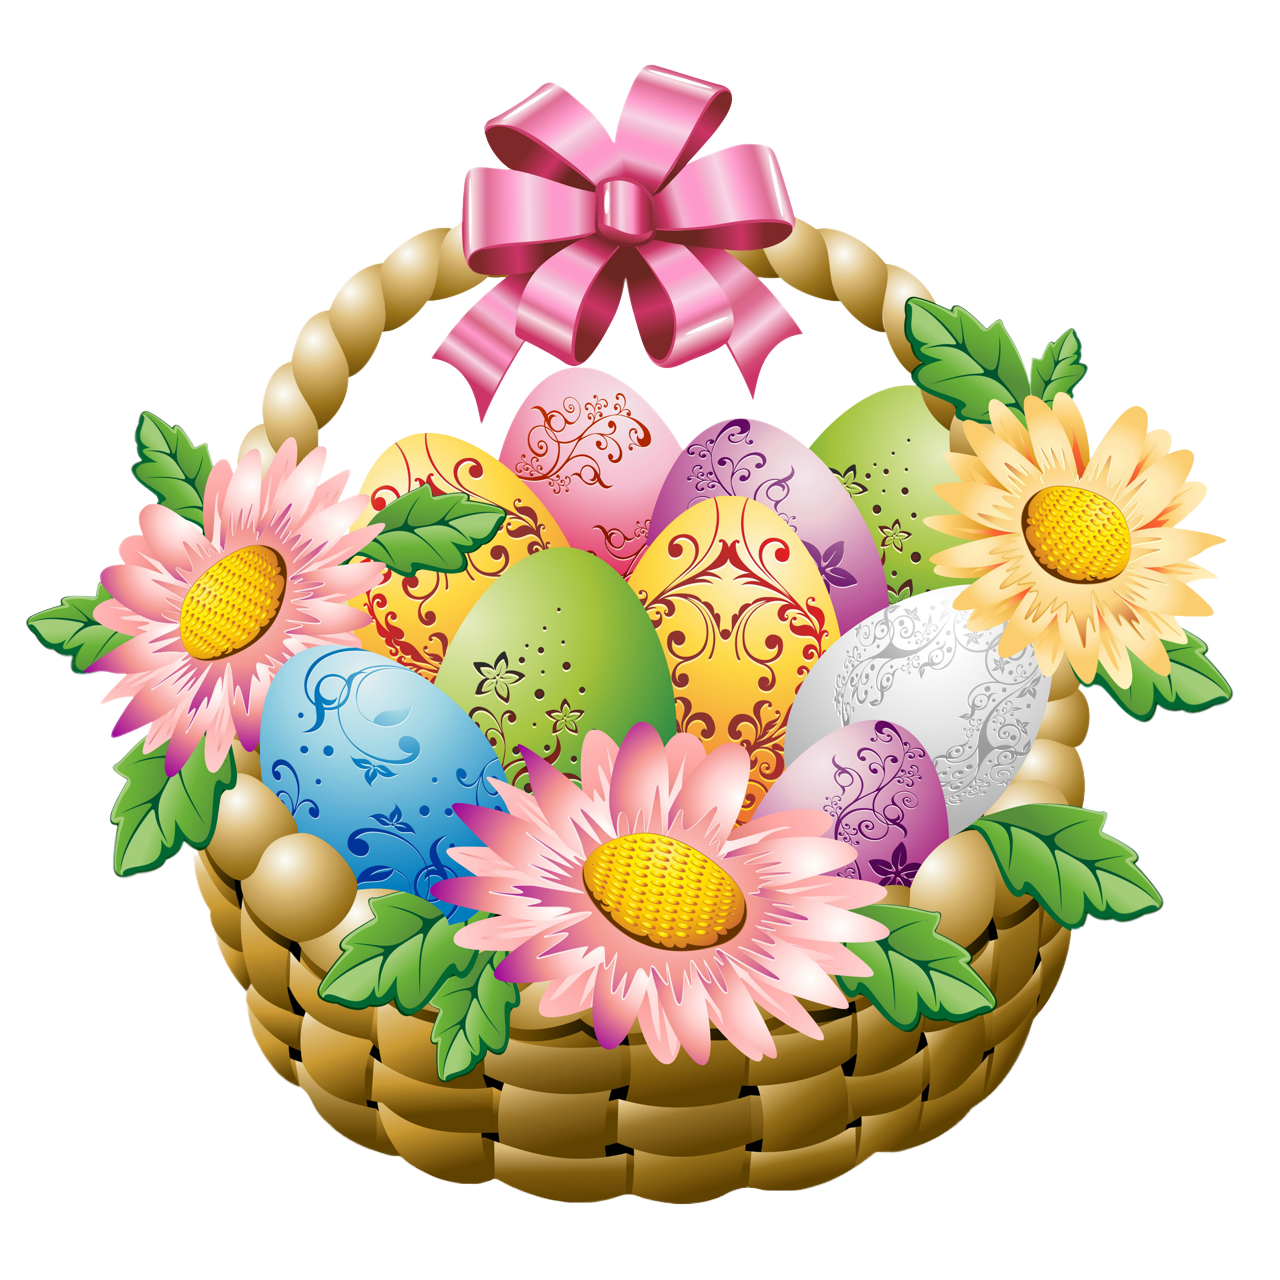 Easter flowers png. Basket with eggs and